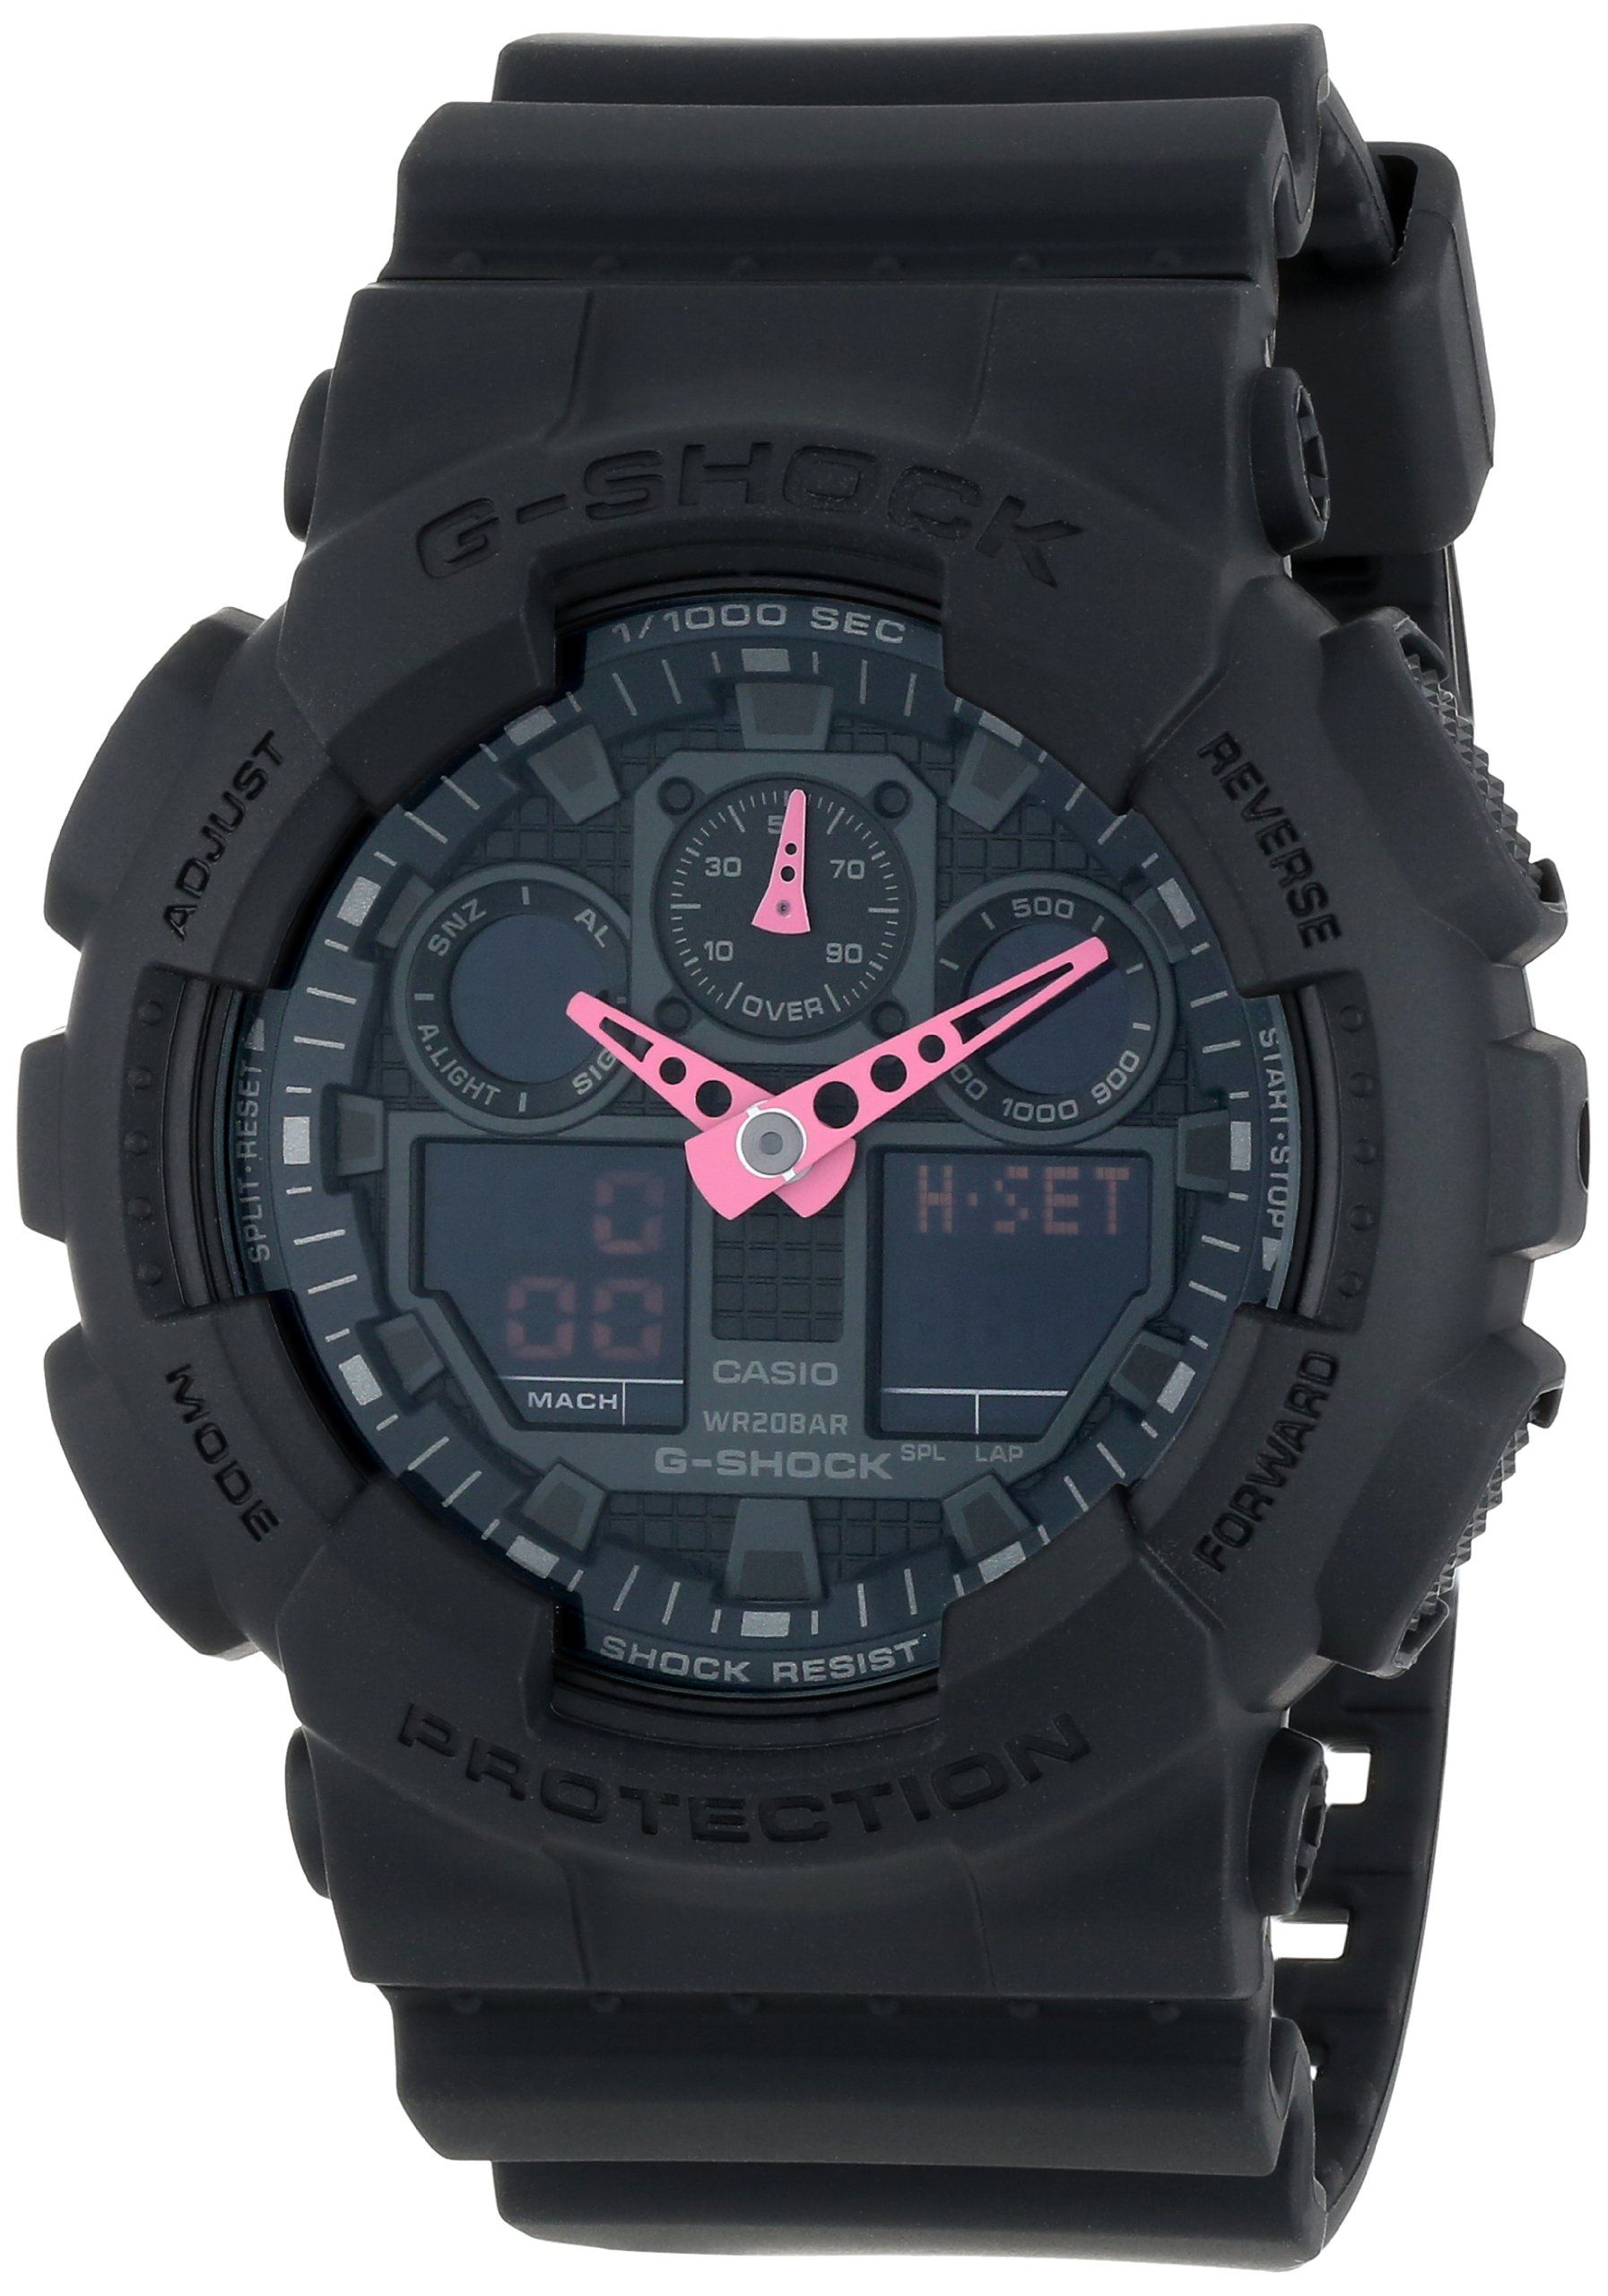 63dcb18cf39 G-Shock GA-100 Neon Highlights Trending Series Men s Luxury Watch -  Black Pink   One Size - OMG